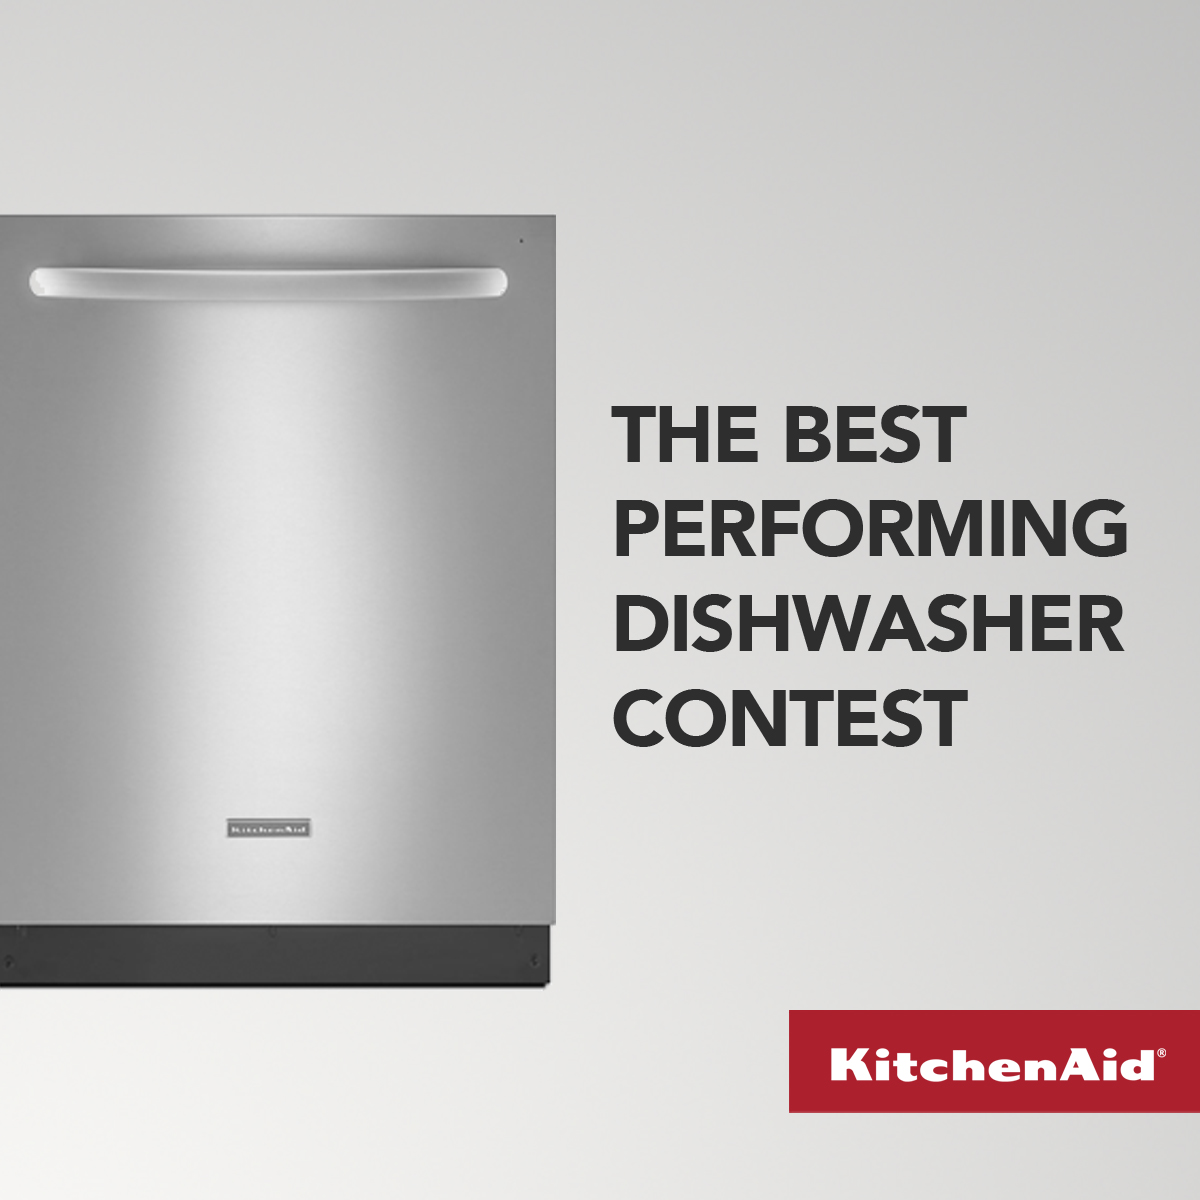 The Kitchenaid Best Performing Facebook Contests Rules